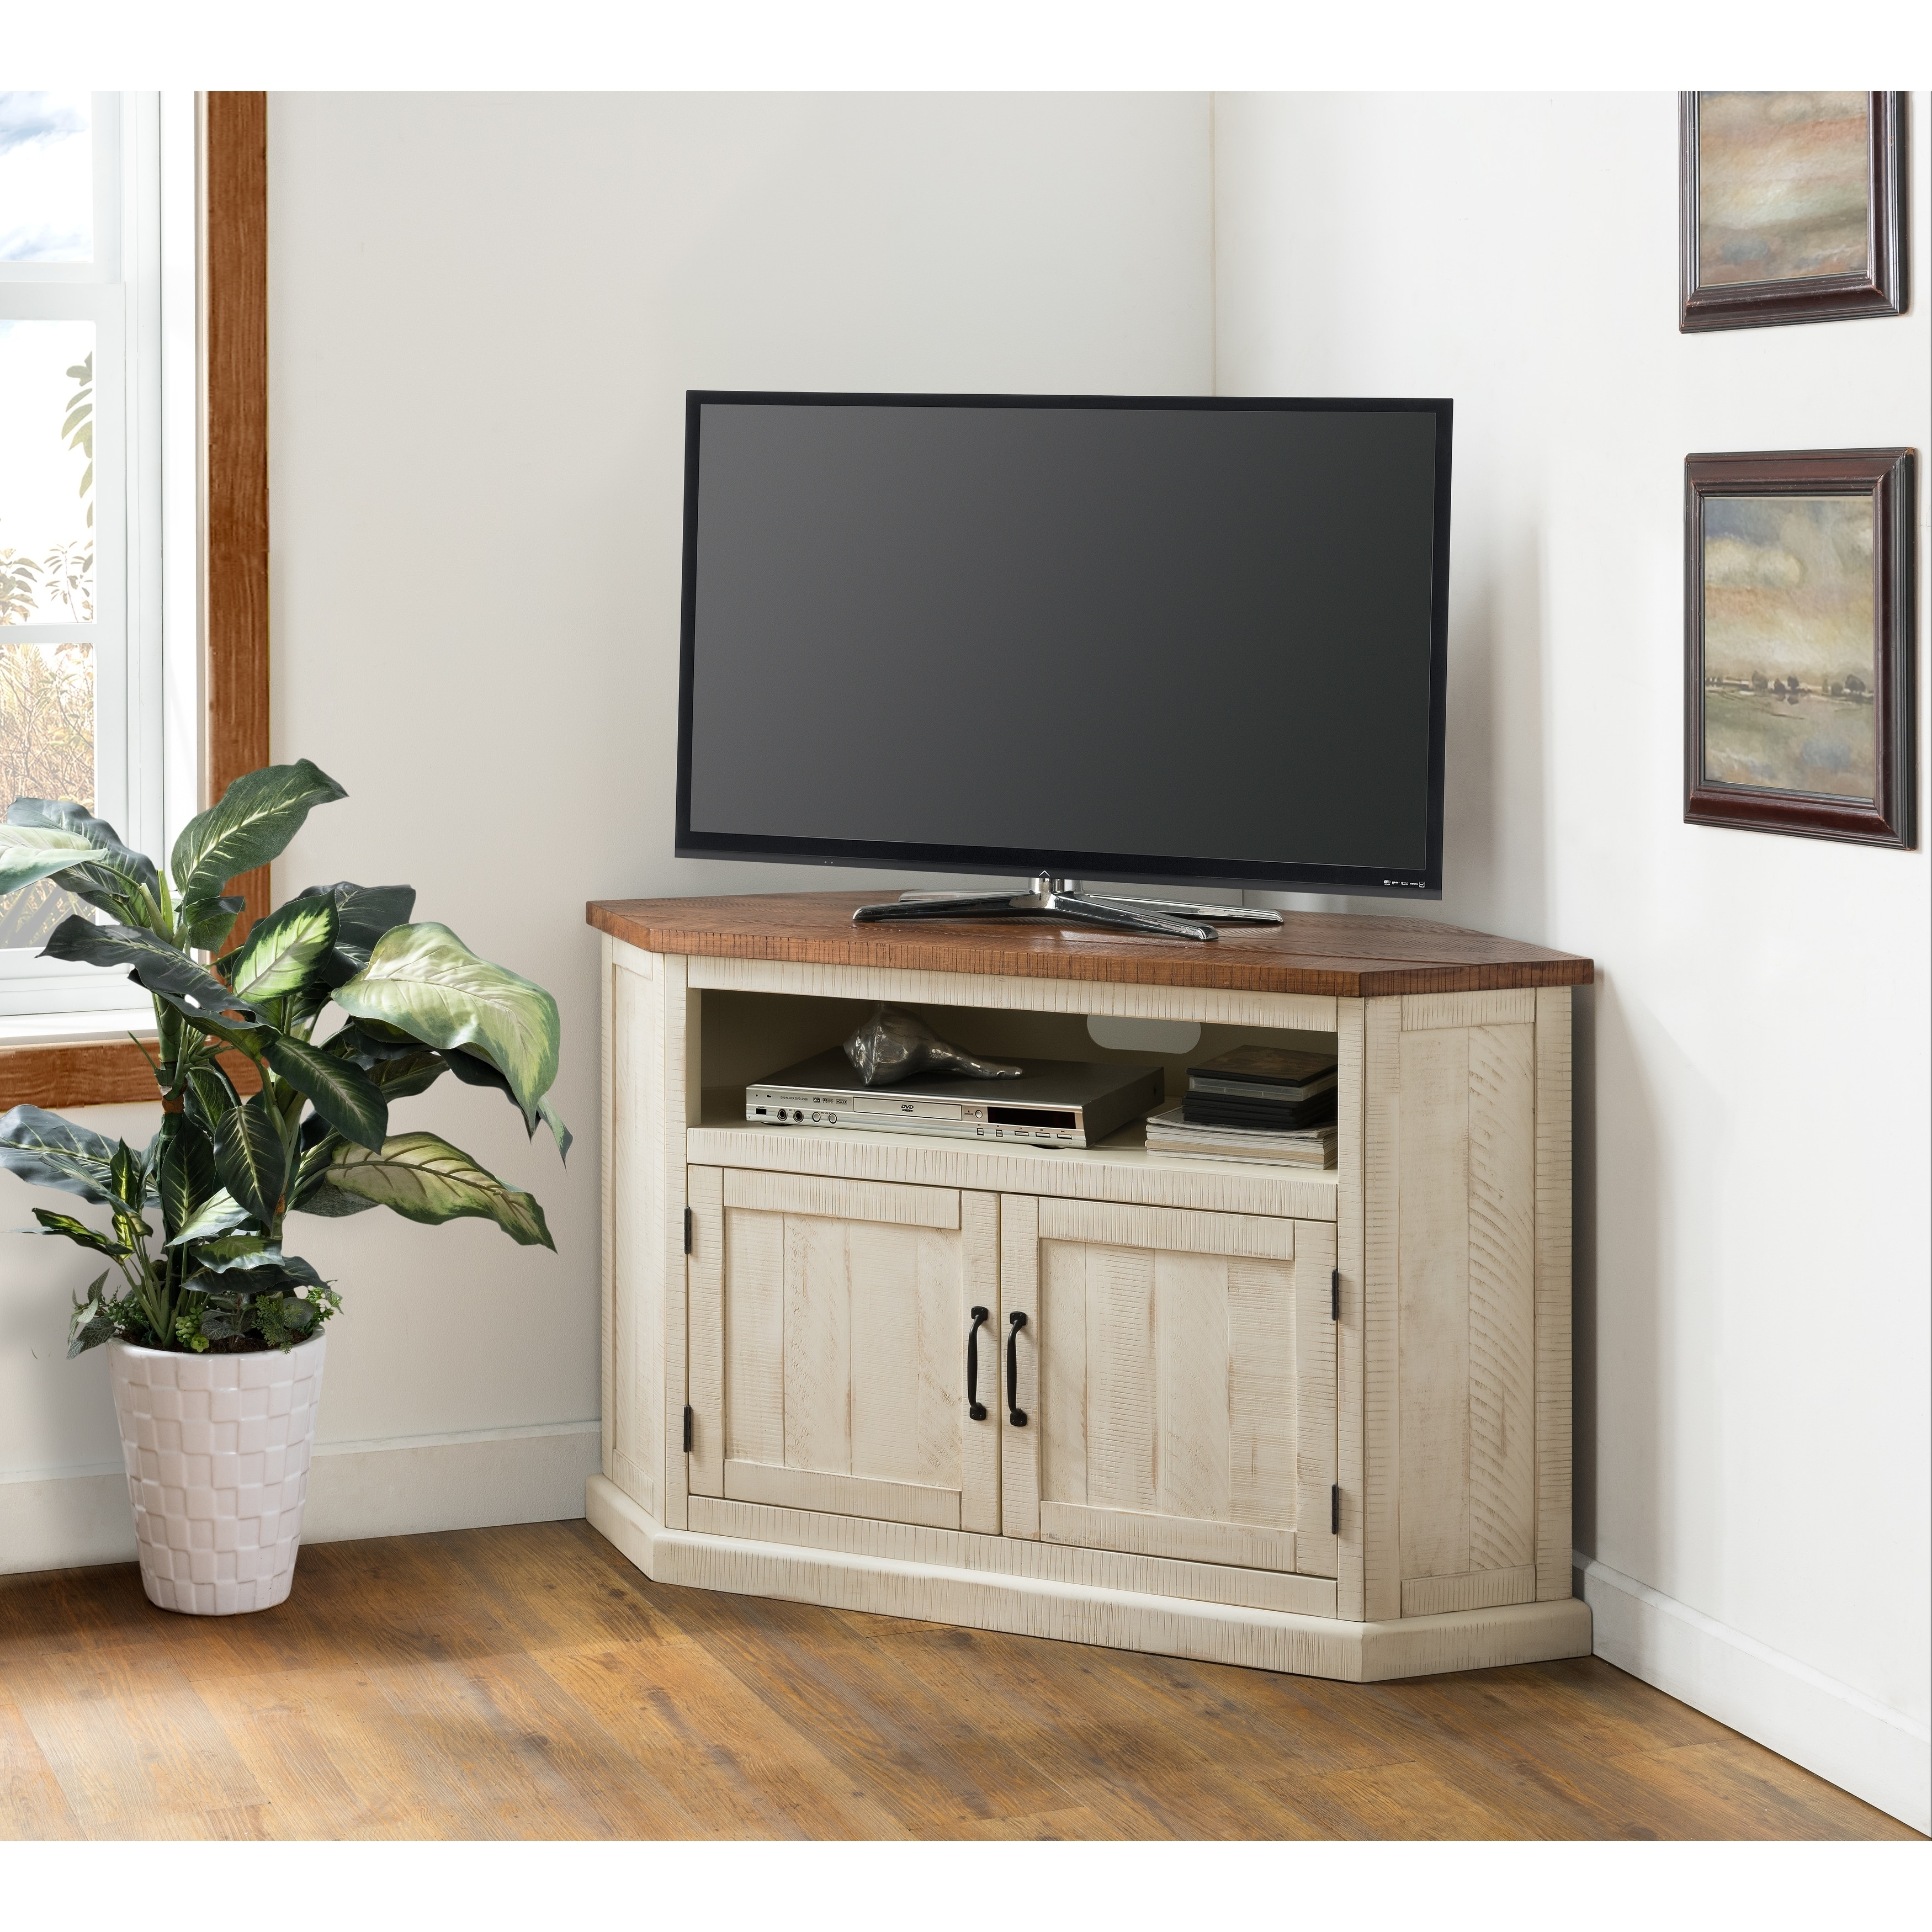 Martin Svensson Home Rustic Collection 50 Solid Wood Corner Tv Stand Free Shipping Today 26264485